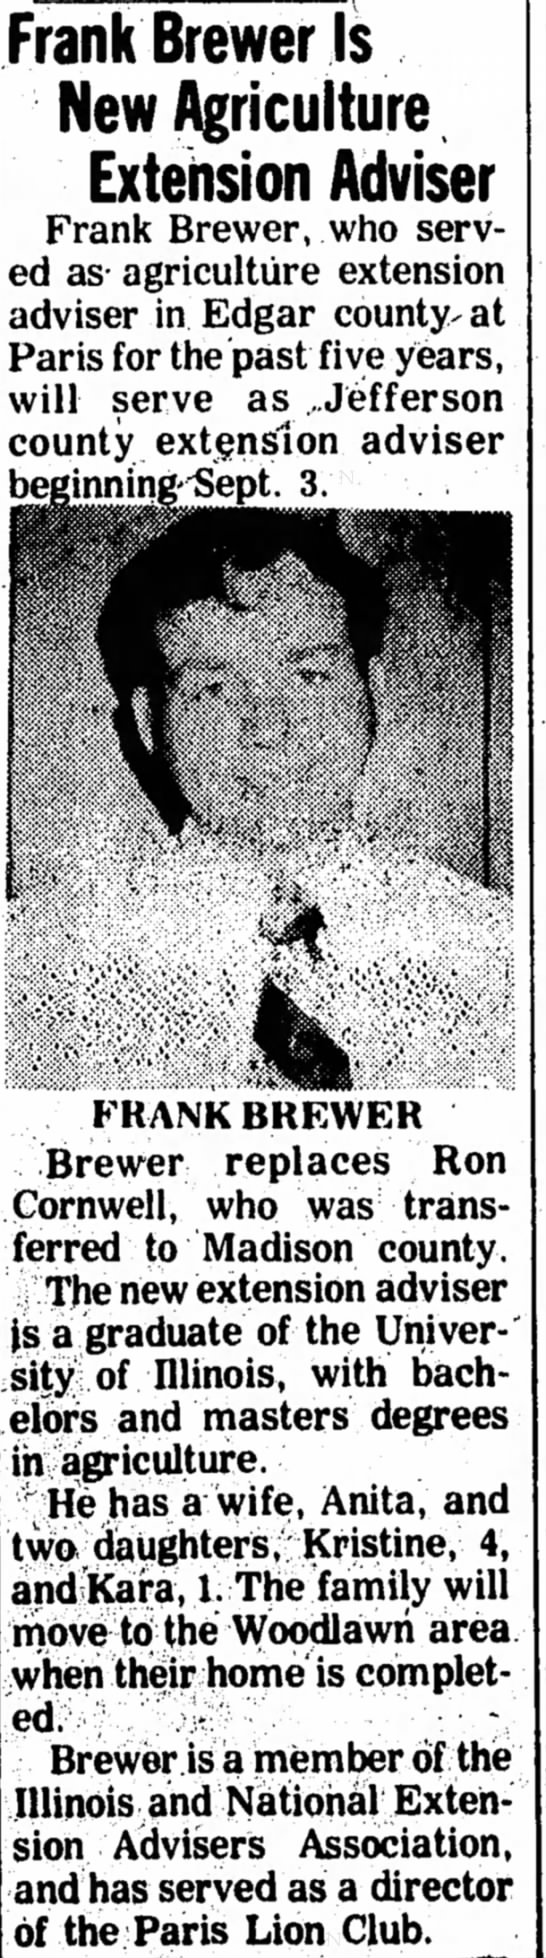 1974 Aug 23 Frank Brewer Replaces Ron - Frank Brewer Is New Agriculture Extension...